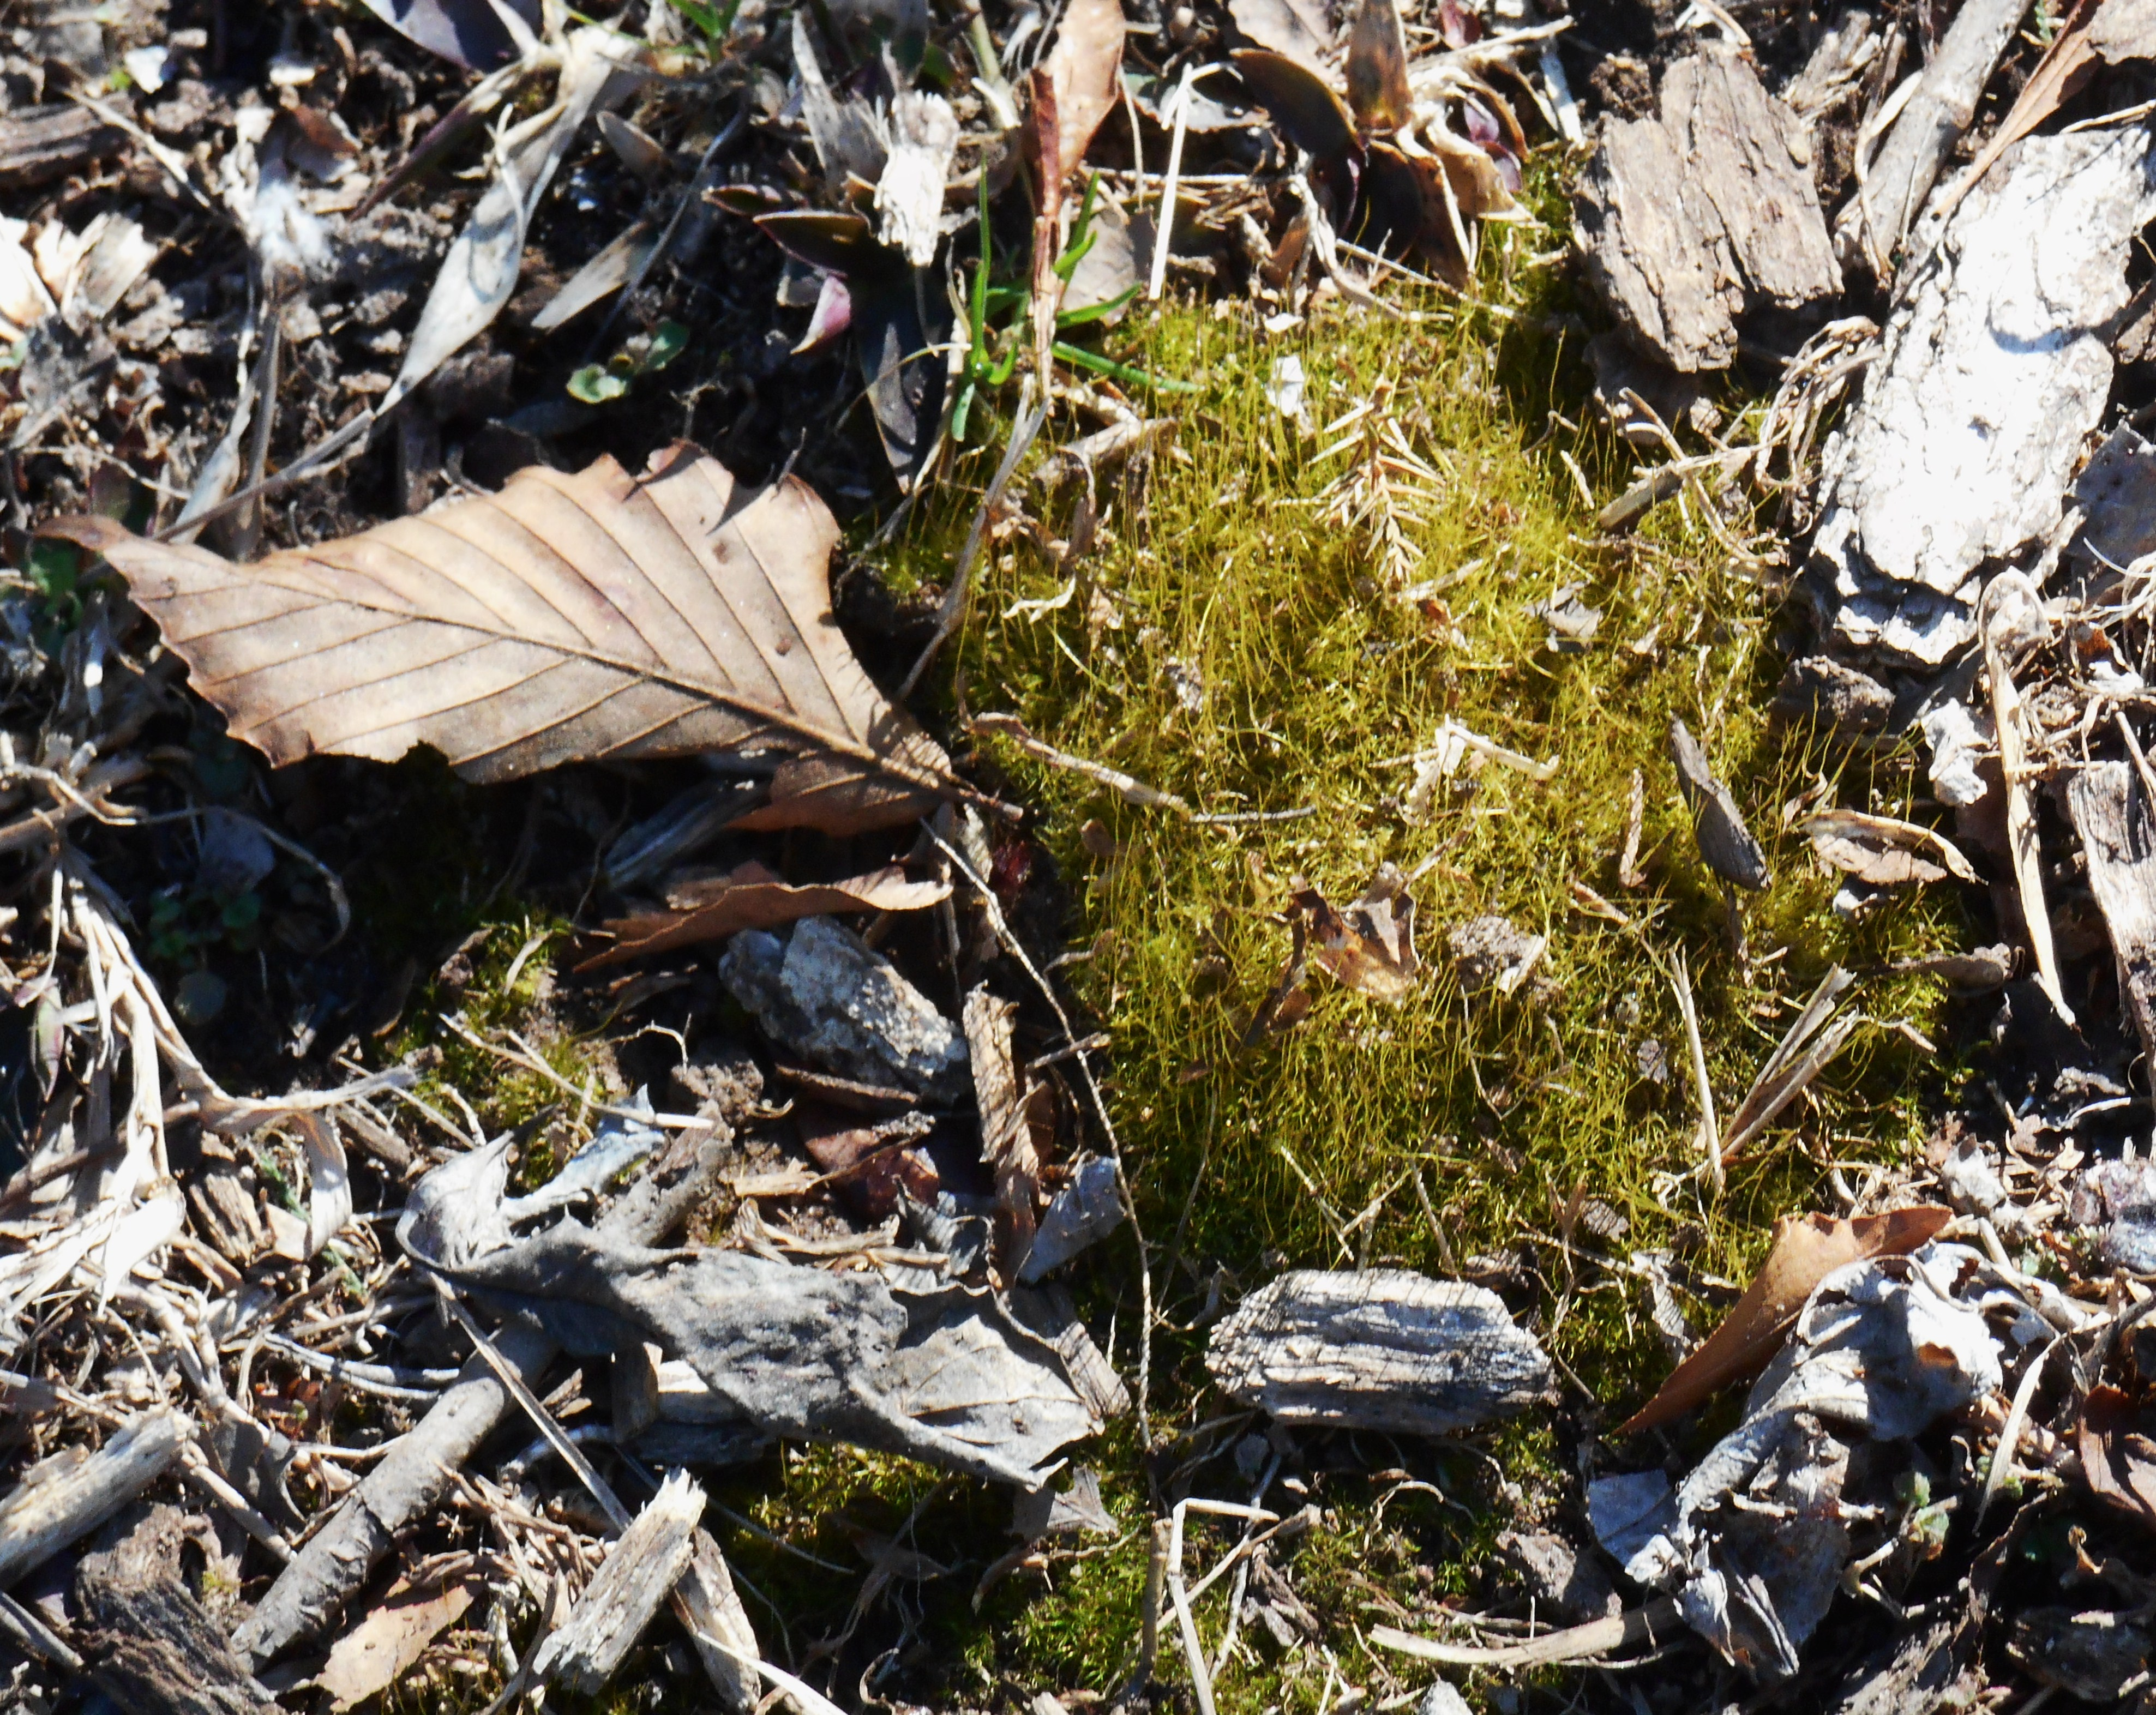 Volunteer moss in our garden ready for harvesting and replanting elsewhere